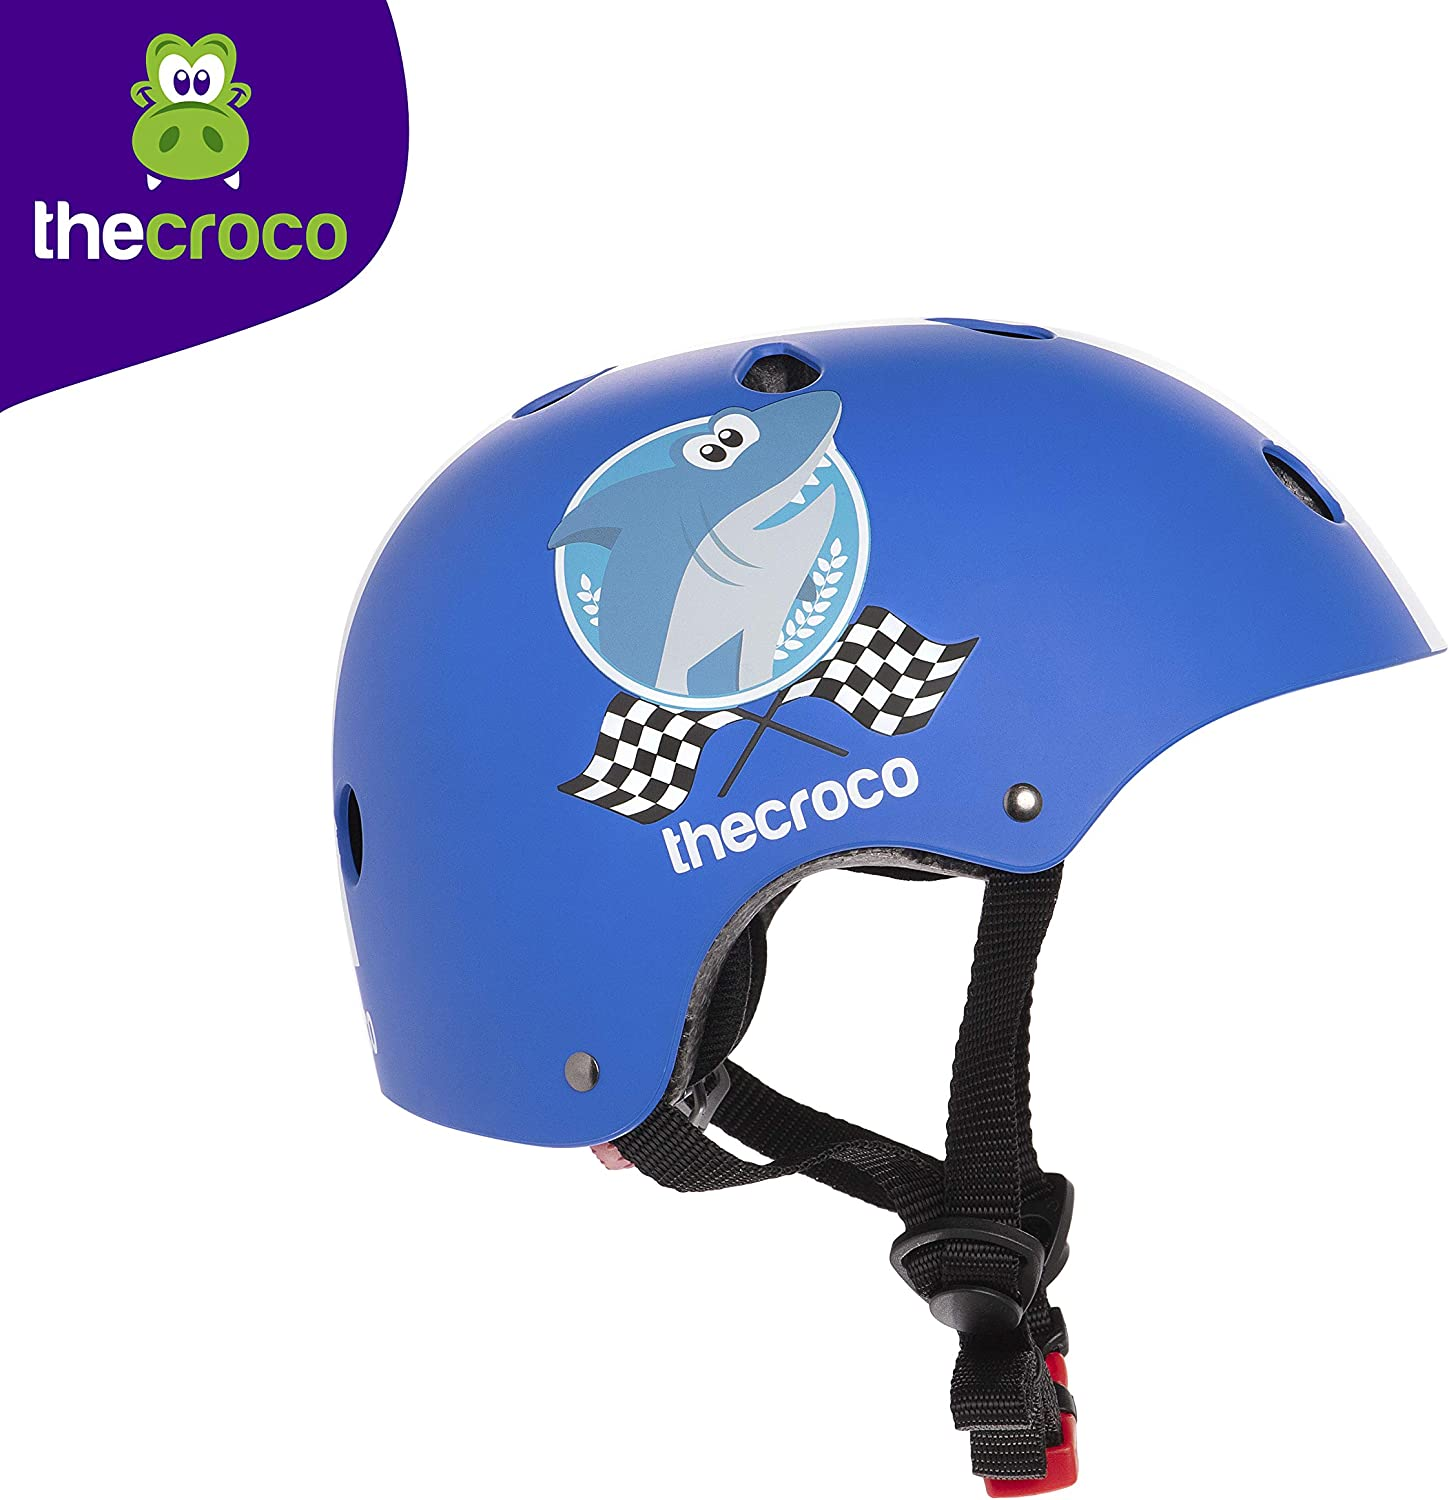 TheCroco Balance Bike Helmet Adjustable for Kids 3 to 6, CPSC ASTM Certified